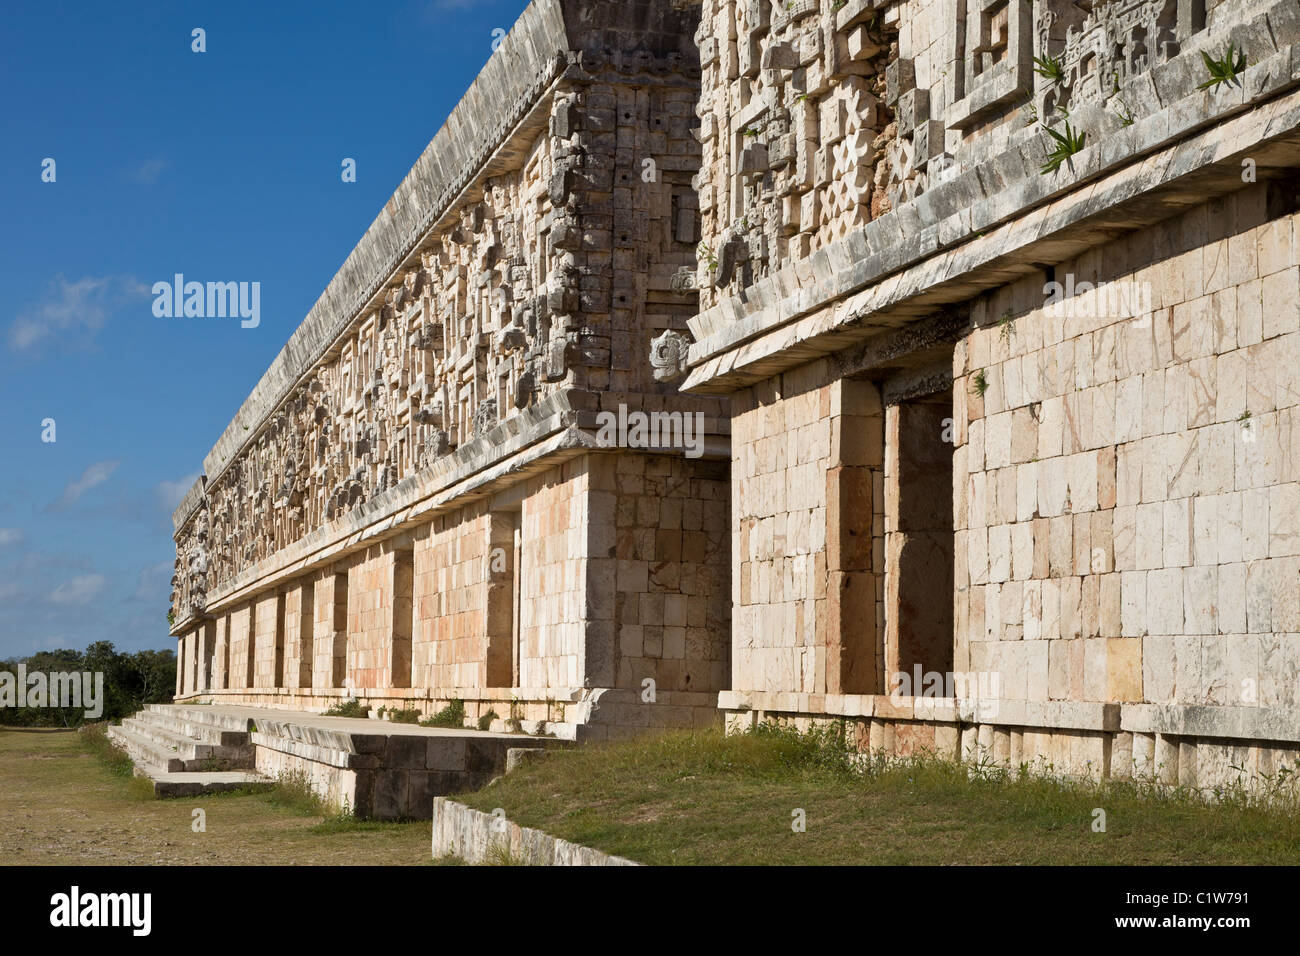 The Palace of the Governor in Uxmal is one of the best examples of